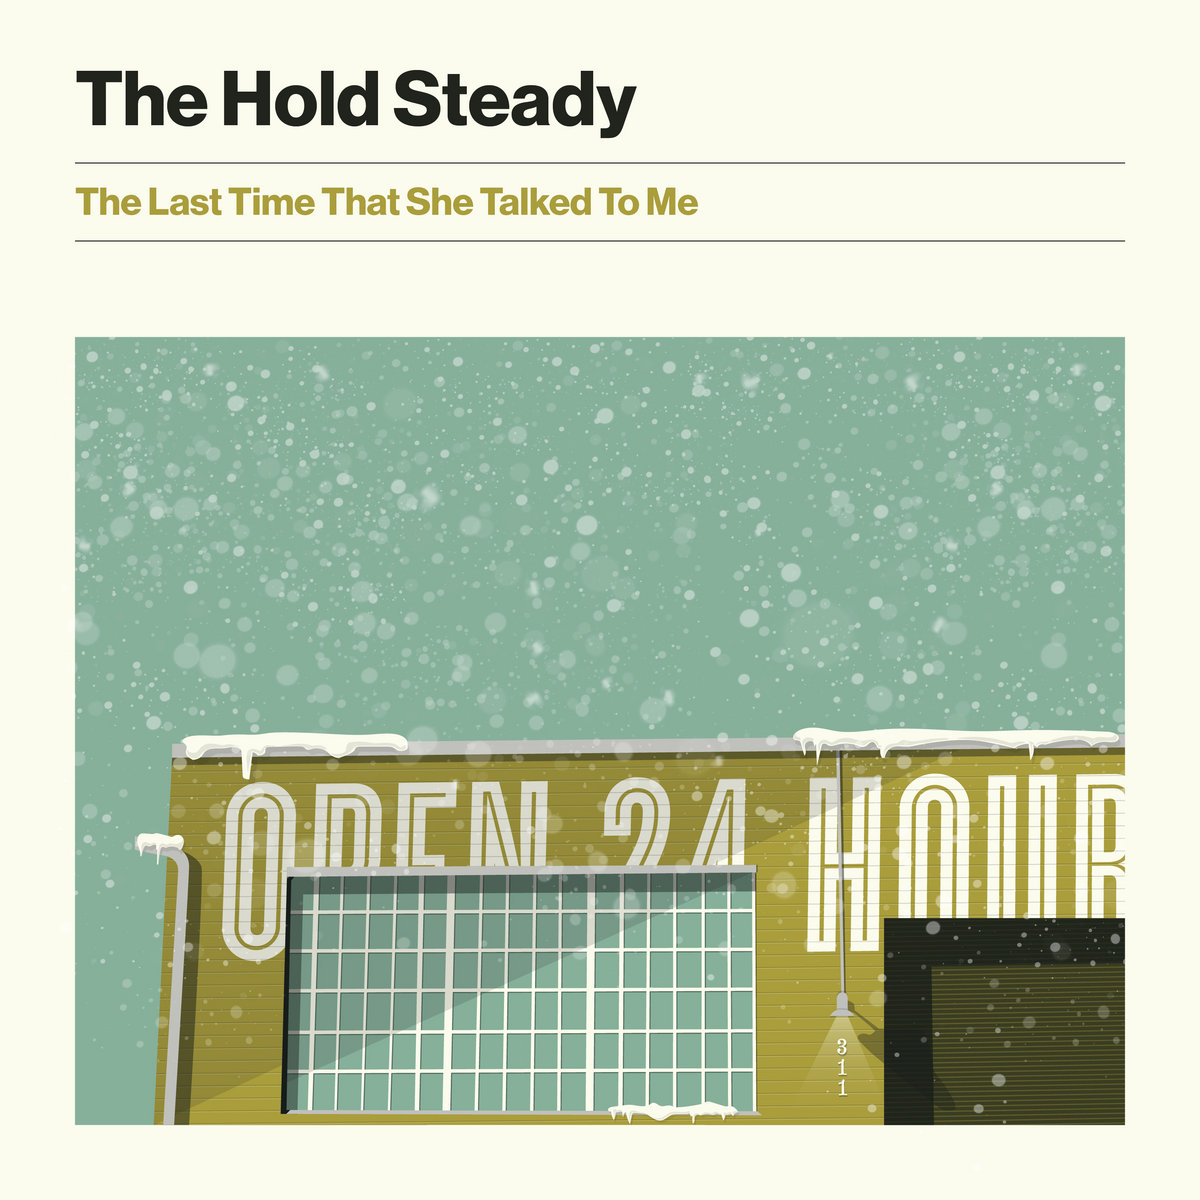 The Last Time That She Talked To Me by The Hold Steady